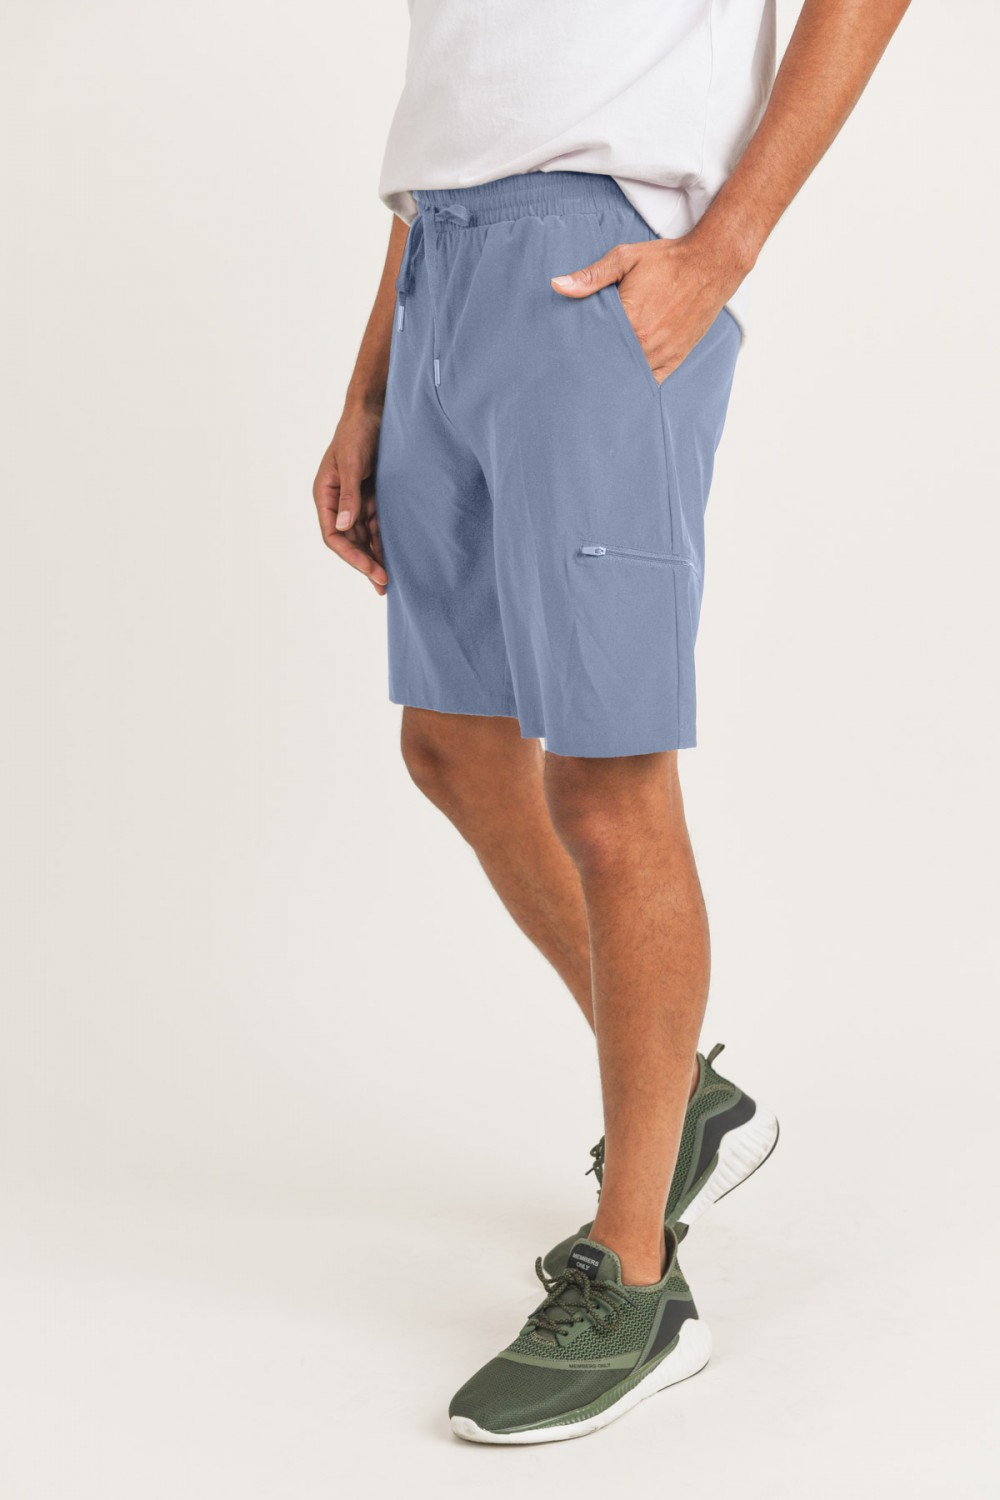 MB507<br/>Mono B MEN - Active Drawstring Shorts with Zippered Pouch (MB507)